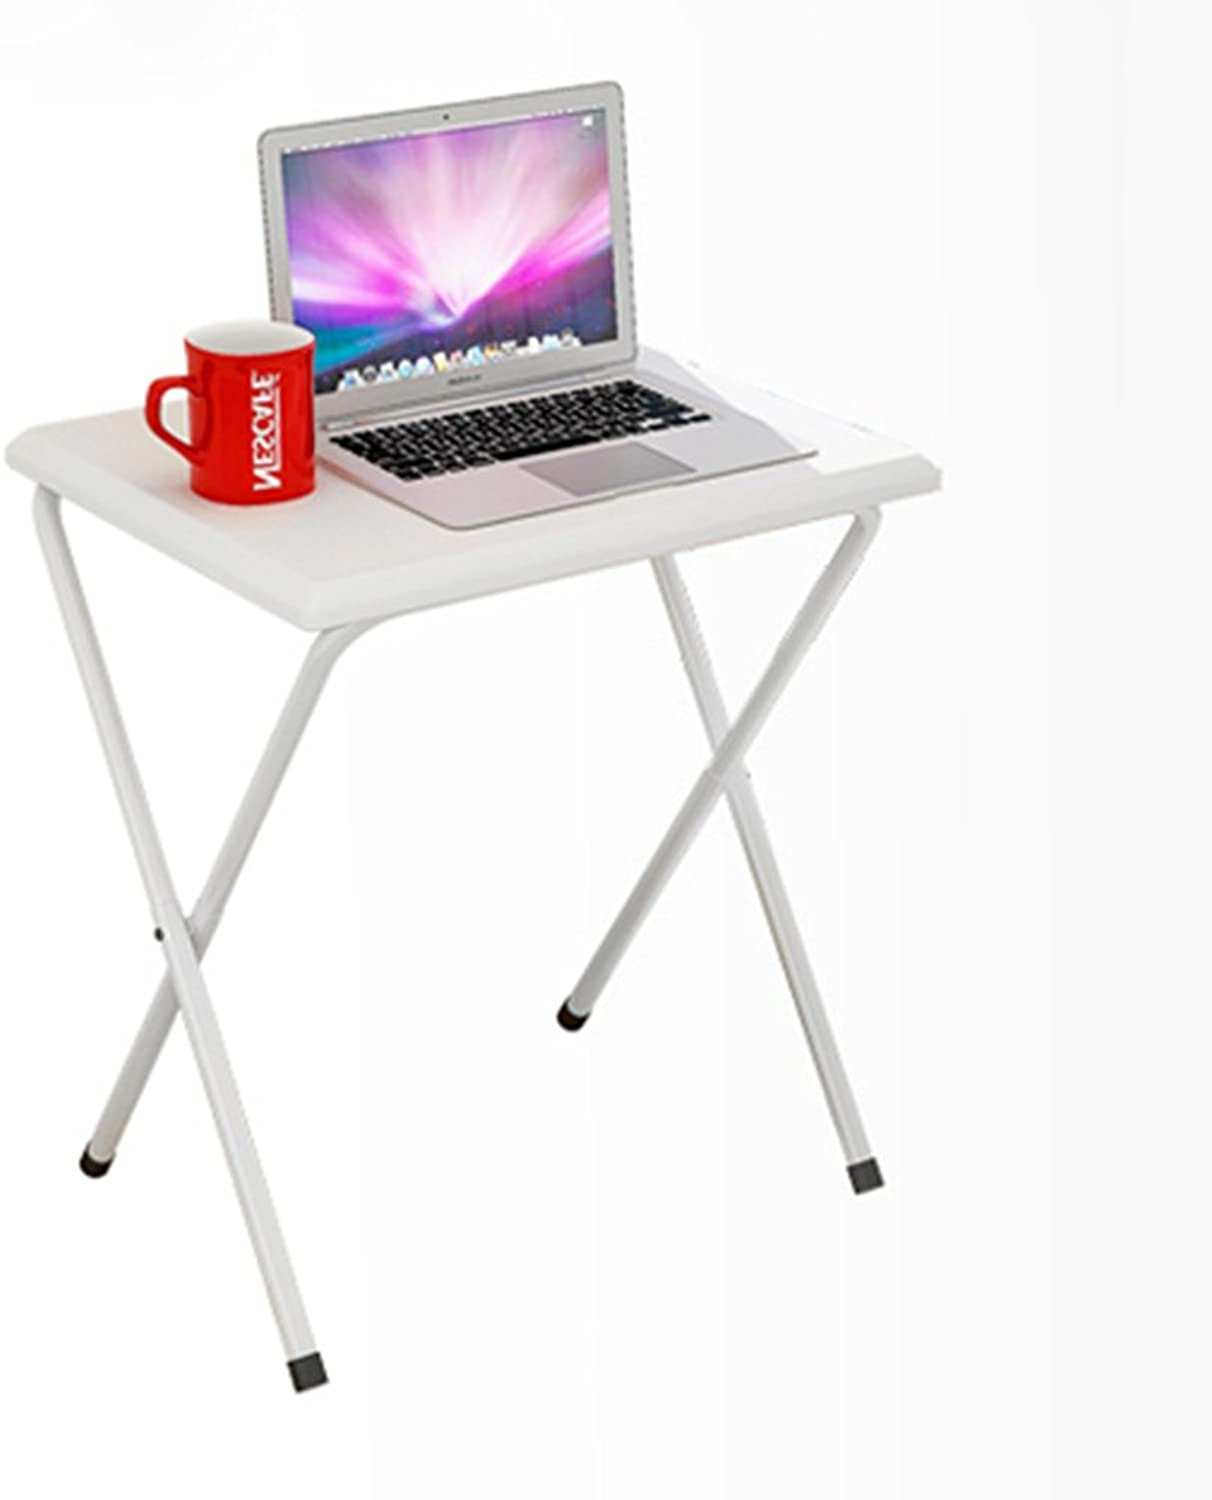 QFFL Table Folding Table Small Computer Desk Folding Book Desk Outdoor Portable Dining Table Multi-Function Table Lapdesks (color   White)